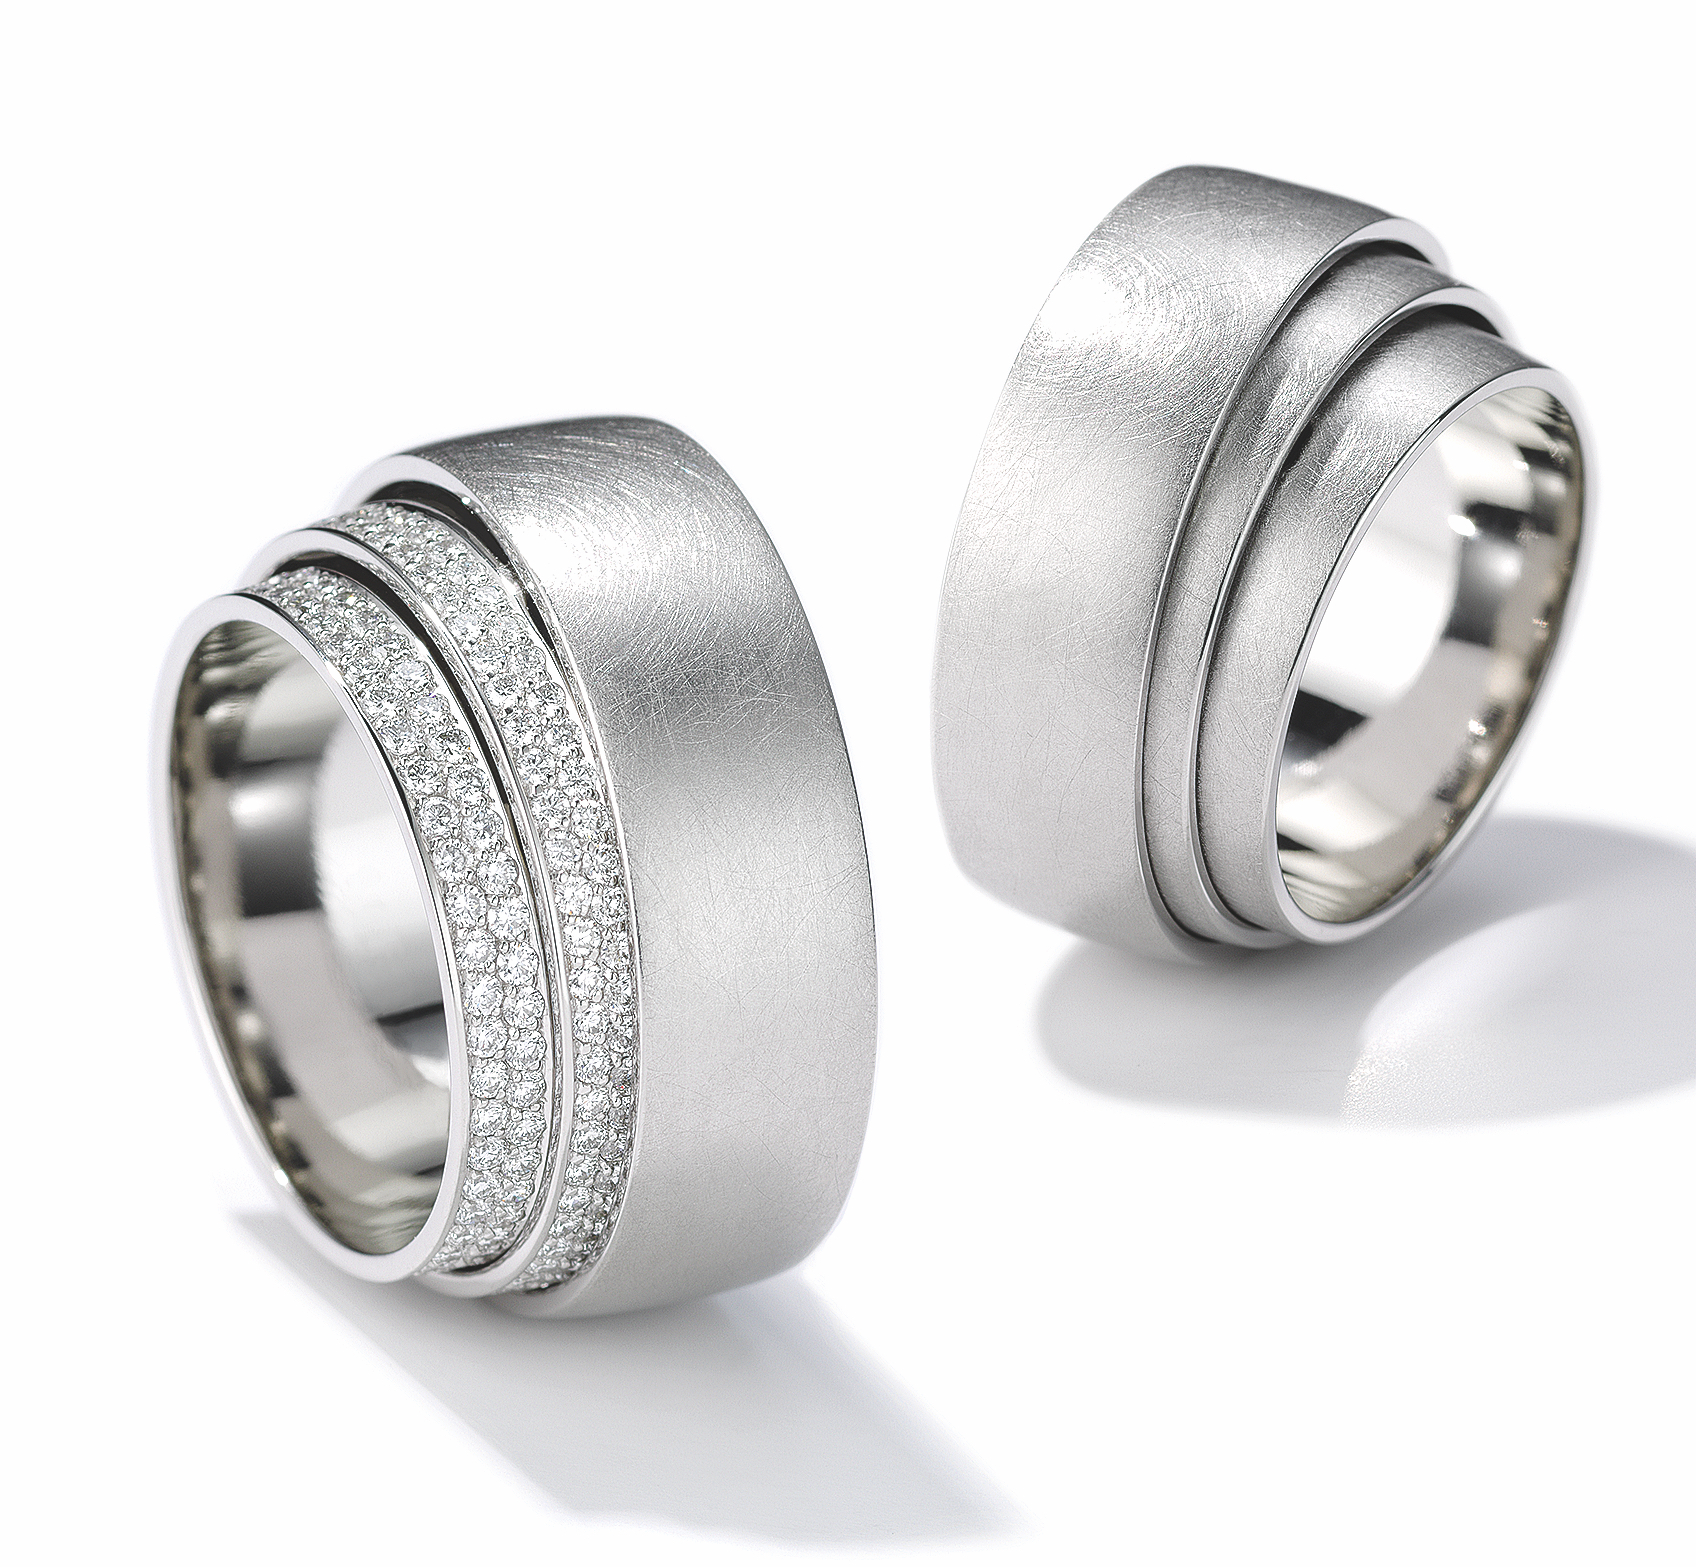 Henrich + Denzel Tenda collection rings | JCK On Your Market